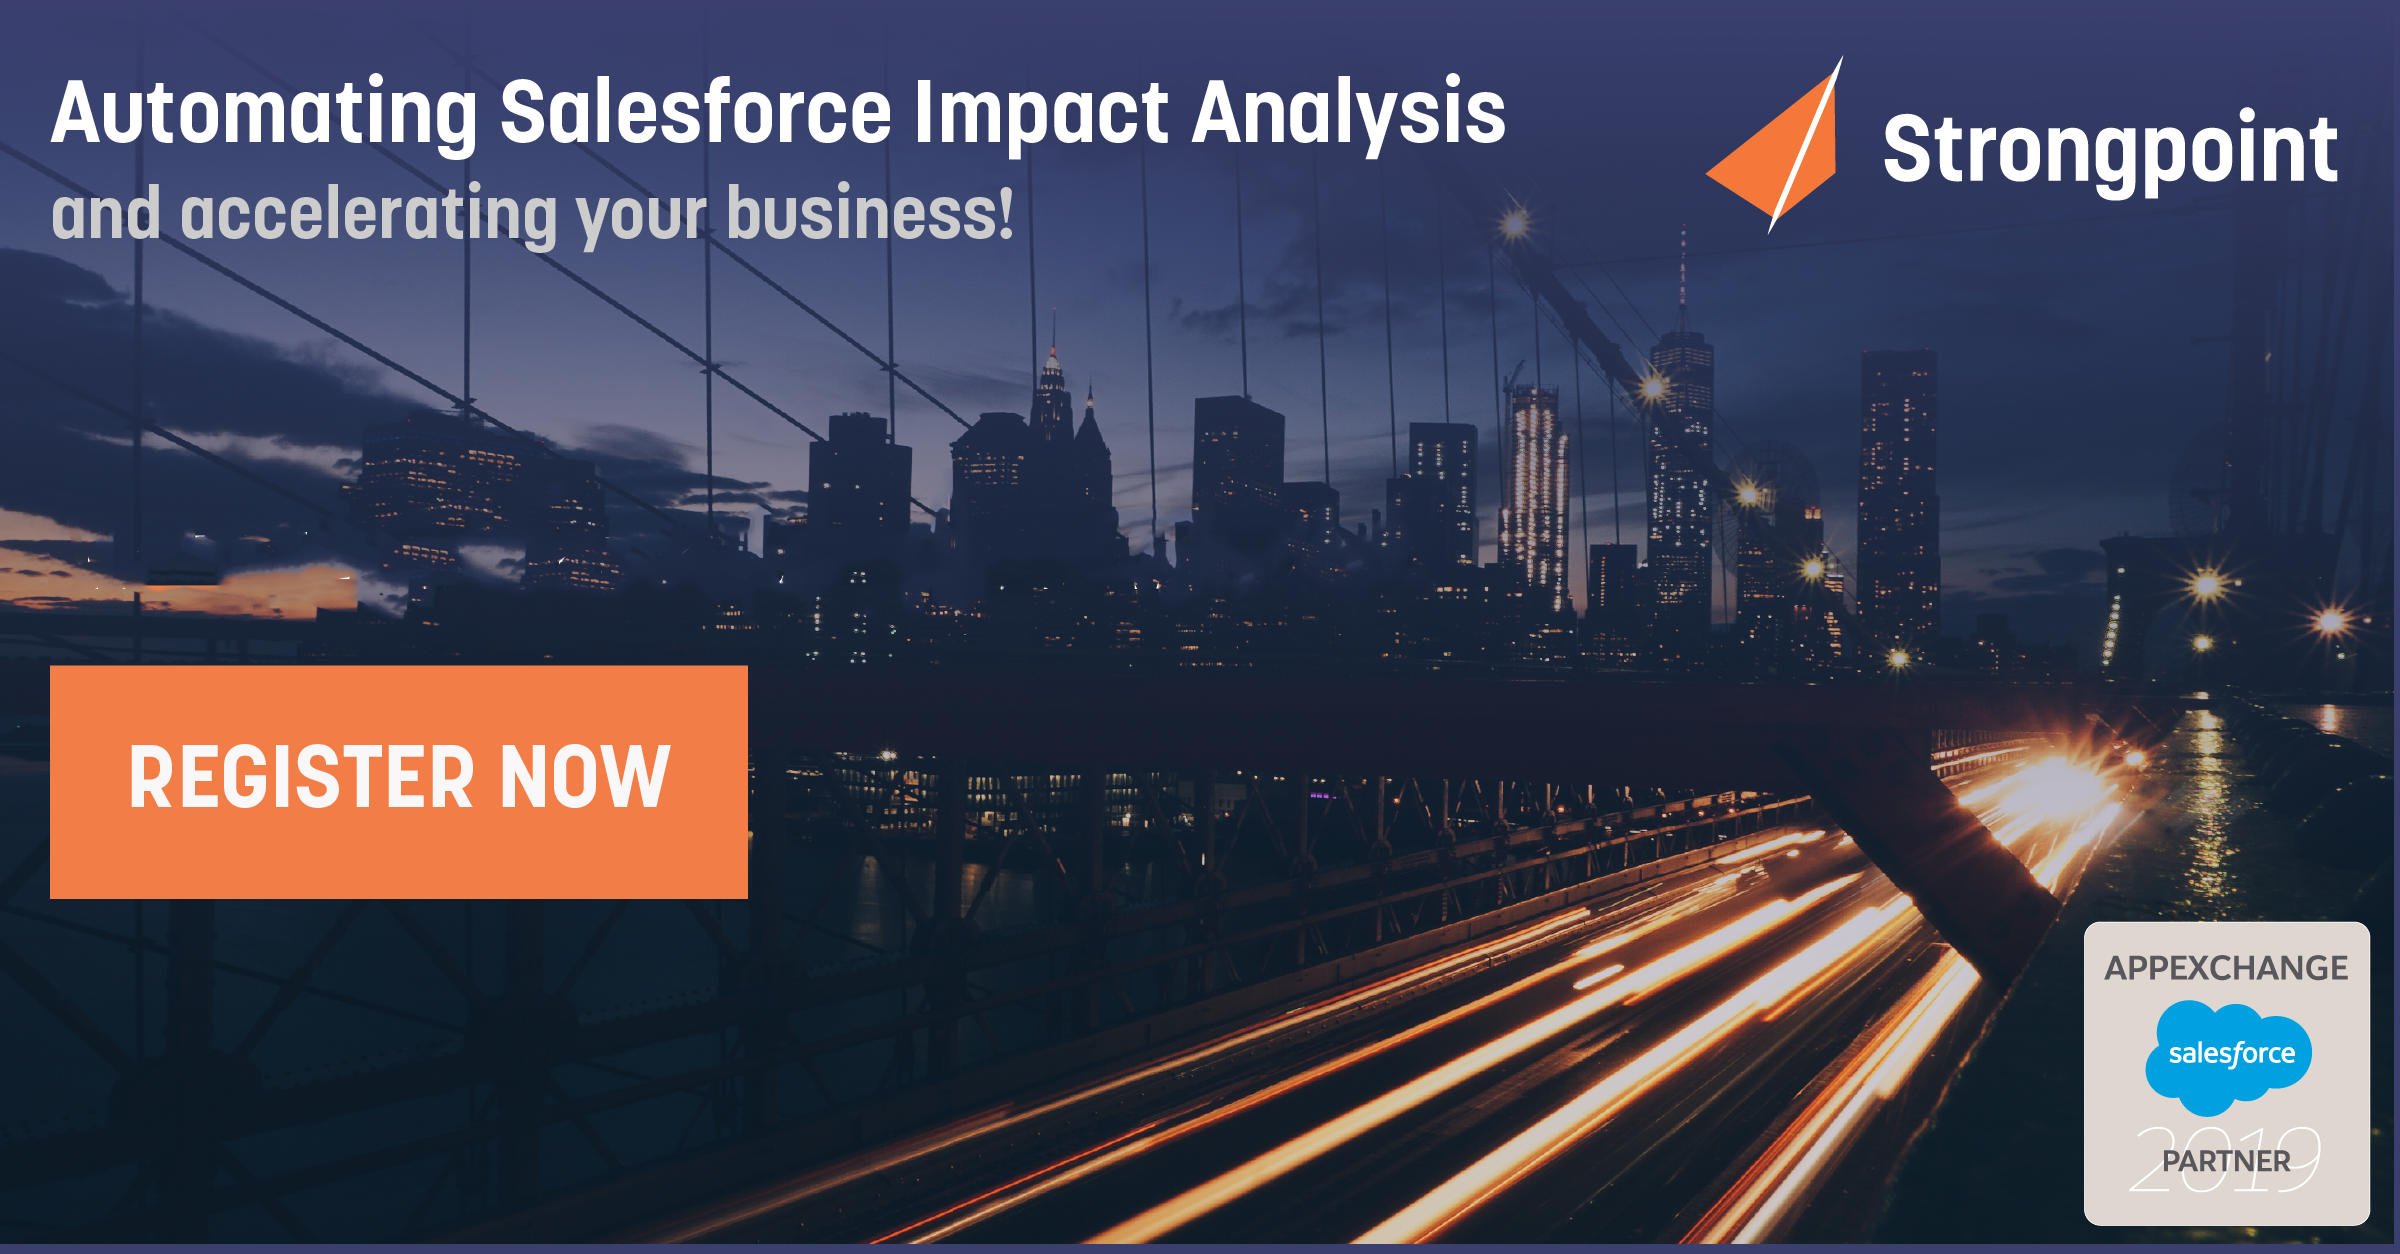 Automate Salesforce impact analysis — and accelerate your business - Strongpoint's documentation and impact analysis features for Salesforce are some of the most powerful tools in a successful admin's toolkit. On September 19, we're hosting a free webinar where you can see them in action.